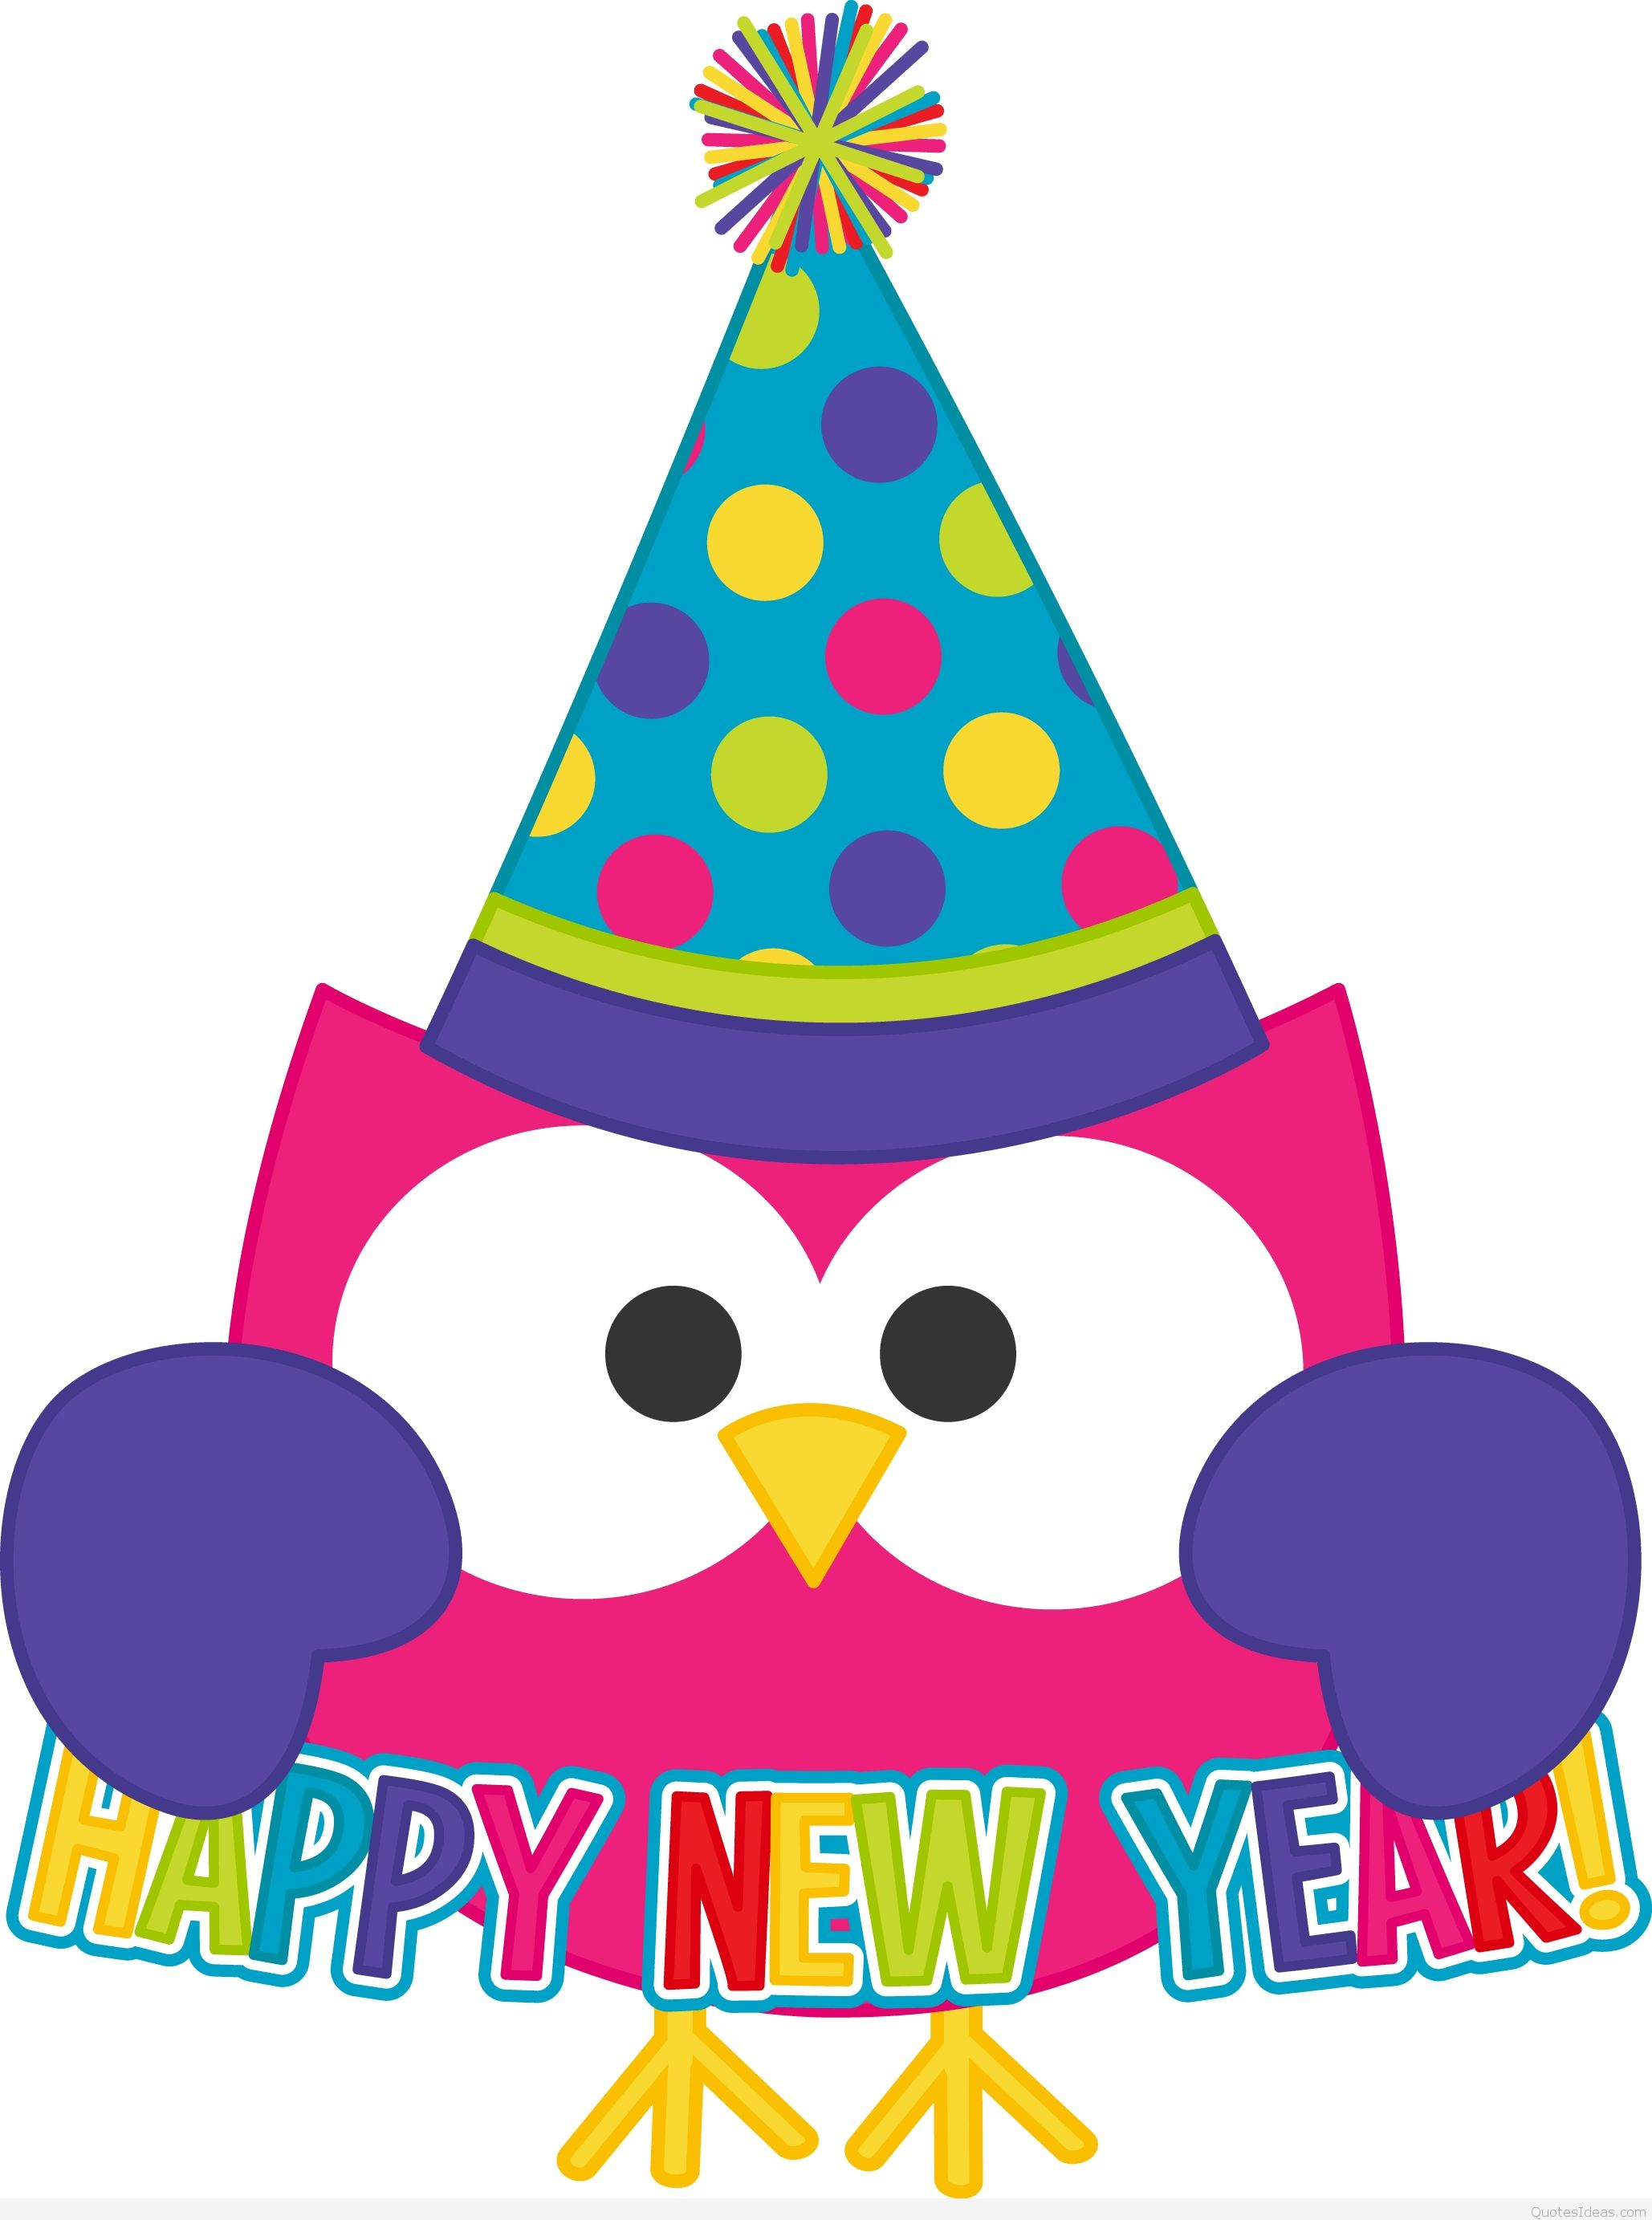 Happy new year free clip art wallpapers.